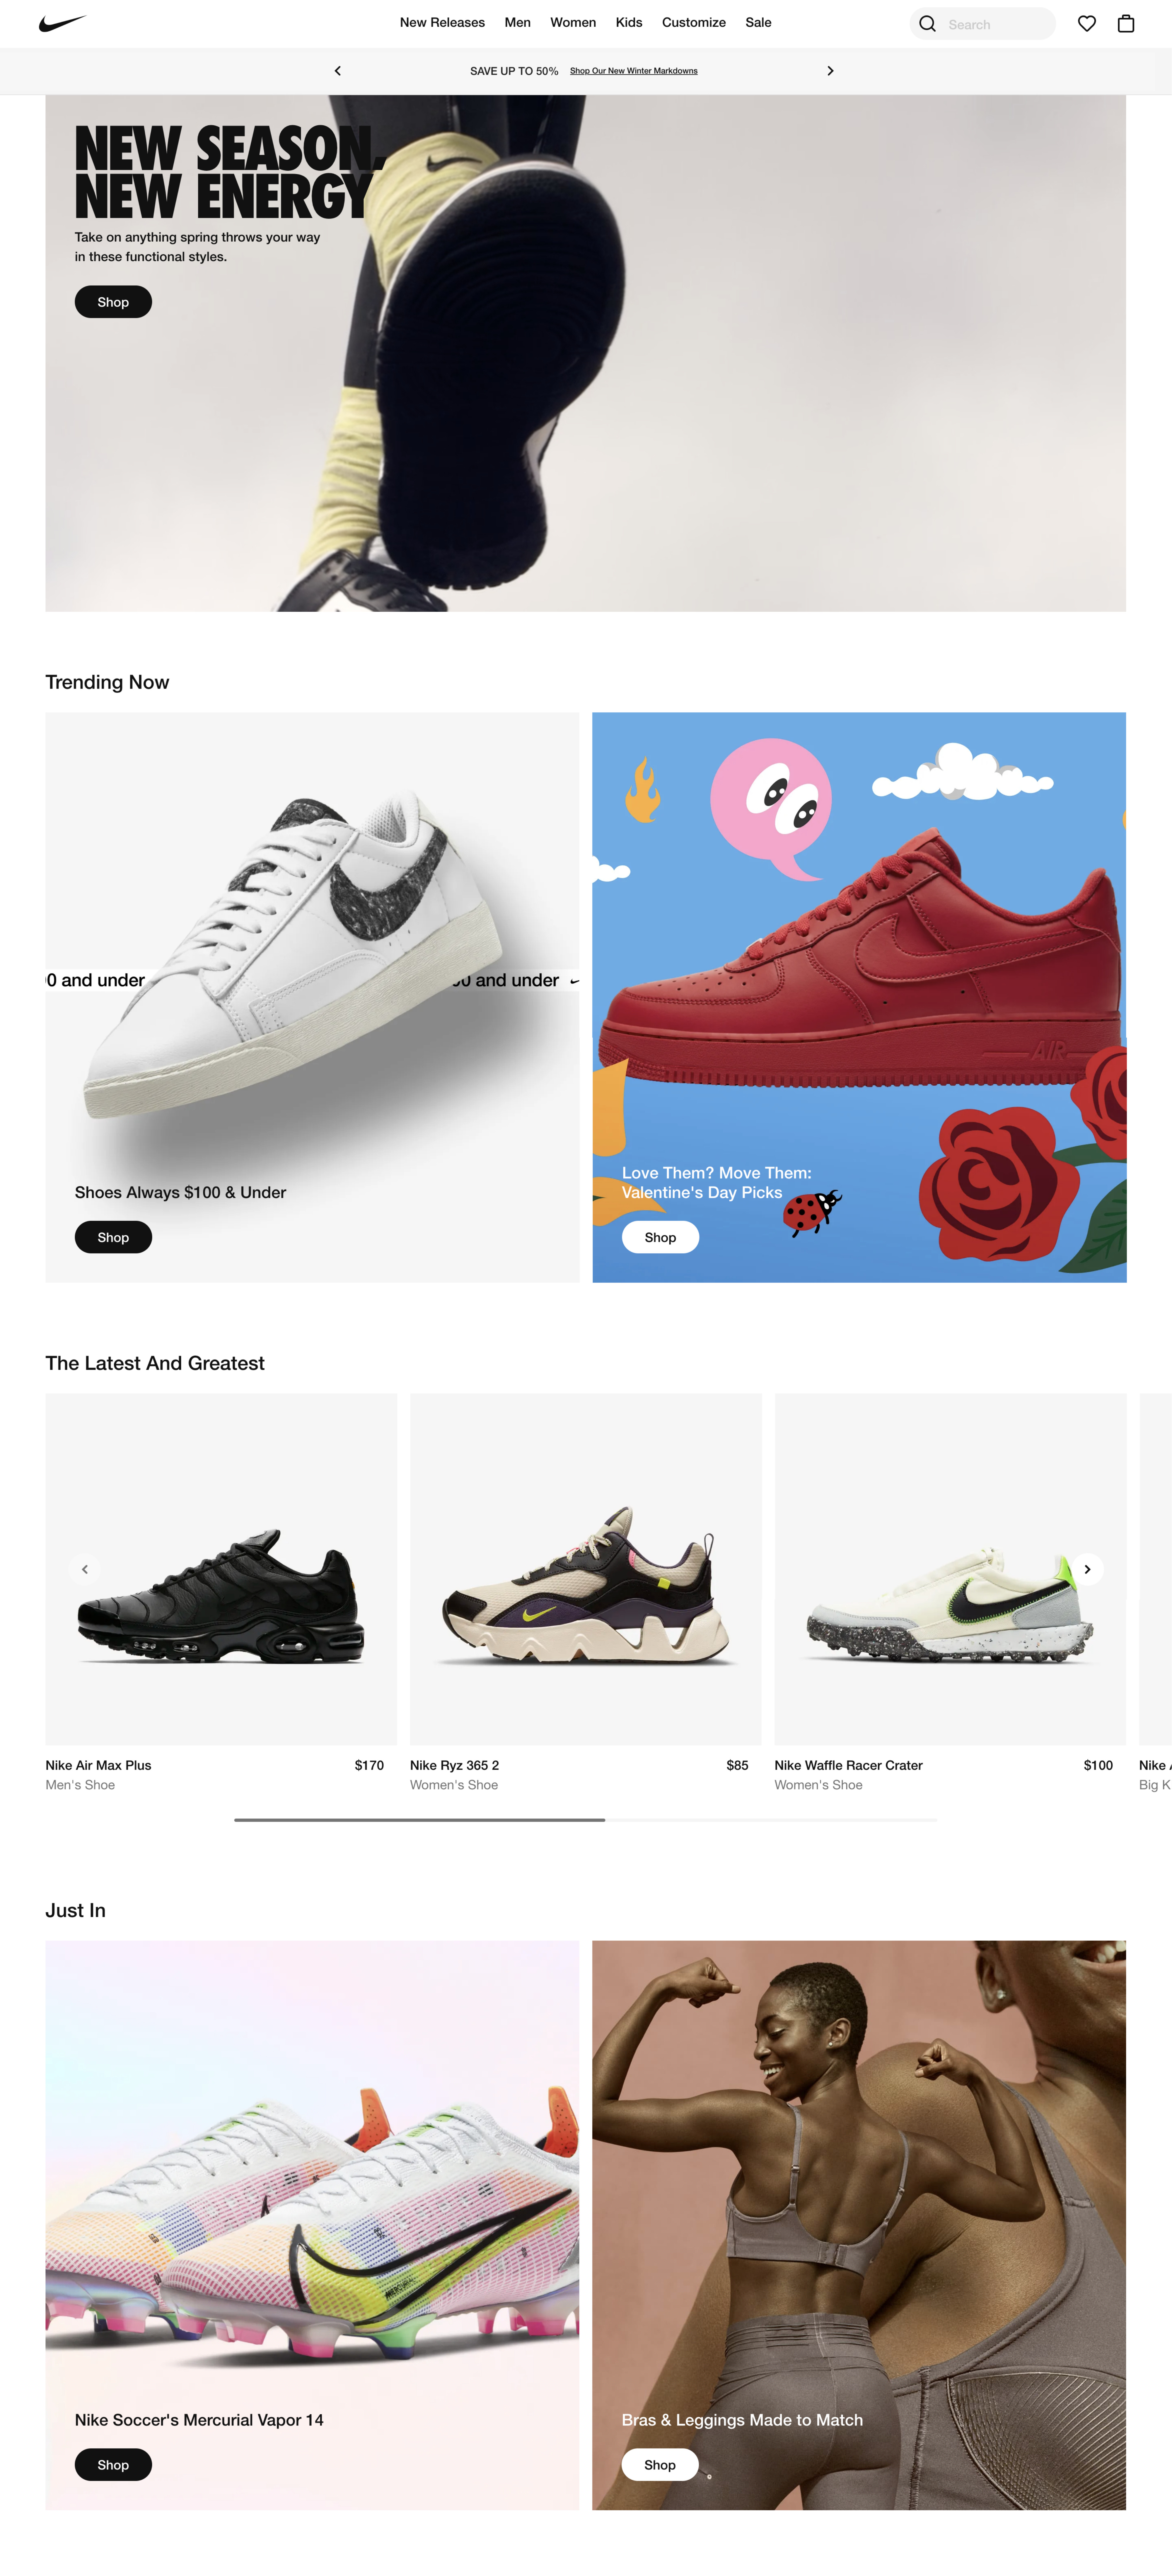 Nike eCommerce agency, Nike mobile app development agency, Nike mobile app design agency, Nike UX/UI agency, Nike web design agency, Nike mobile app agency, Nike product development agency